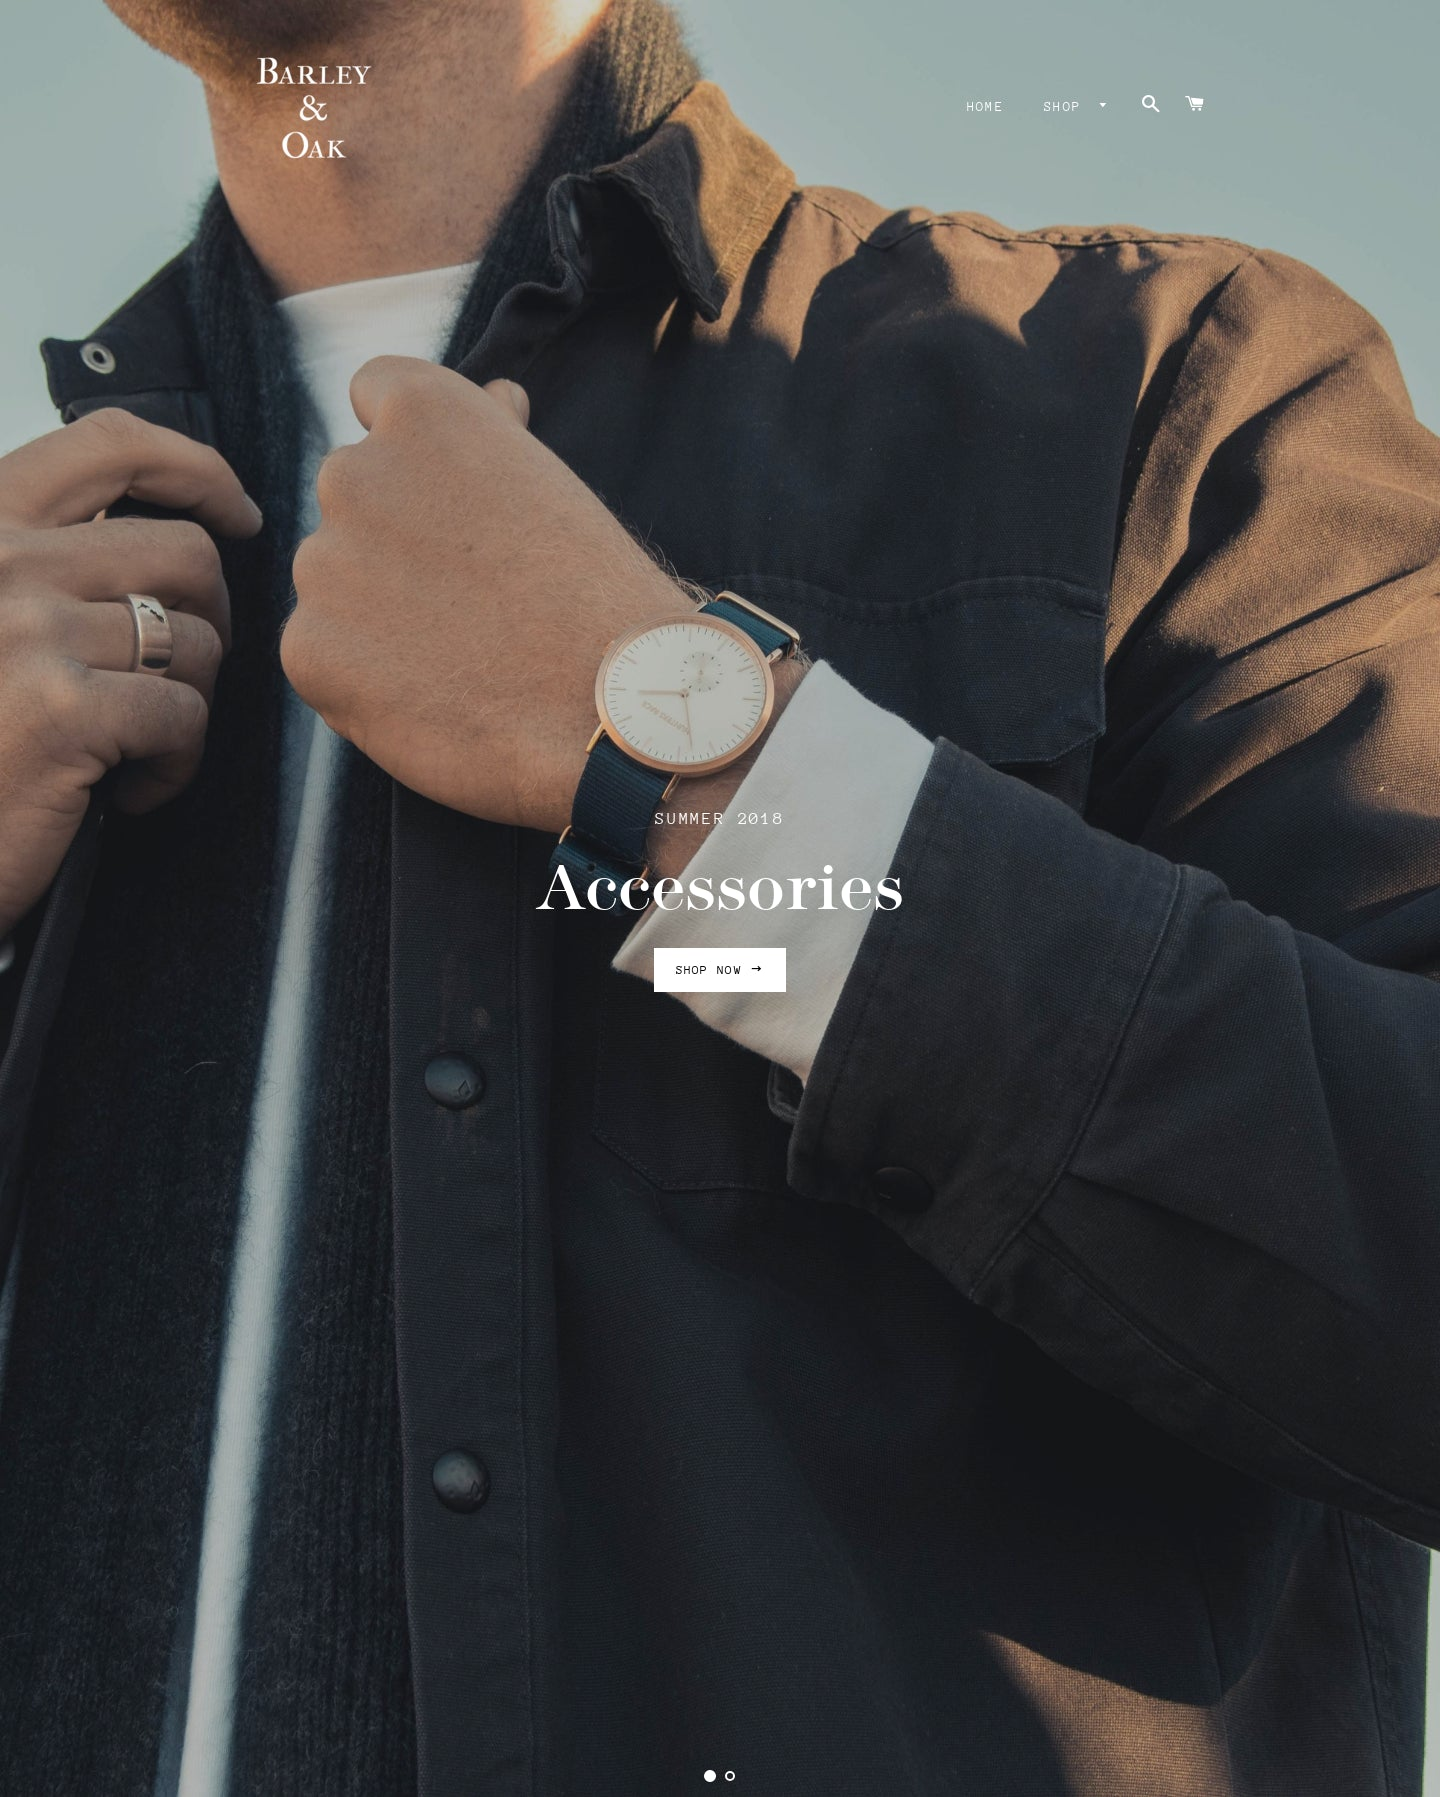 Barley and Oak | High End Men's Fashion Website Screenshot - 1